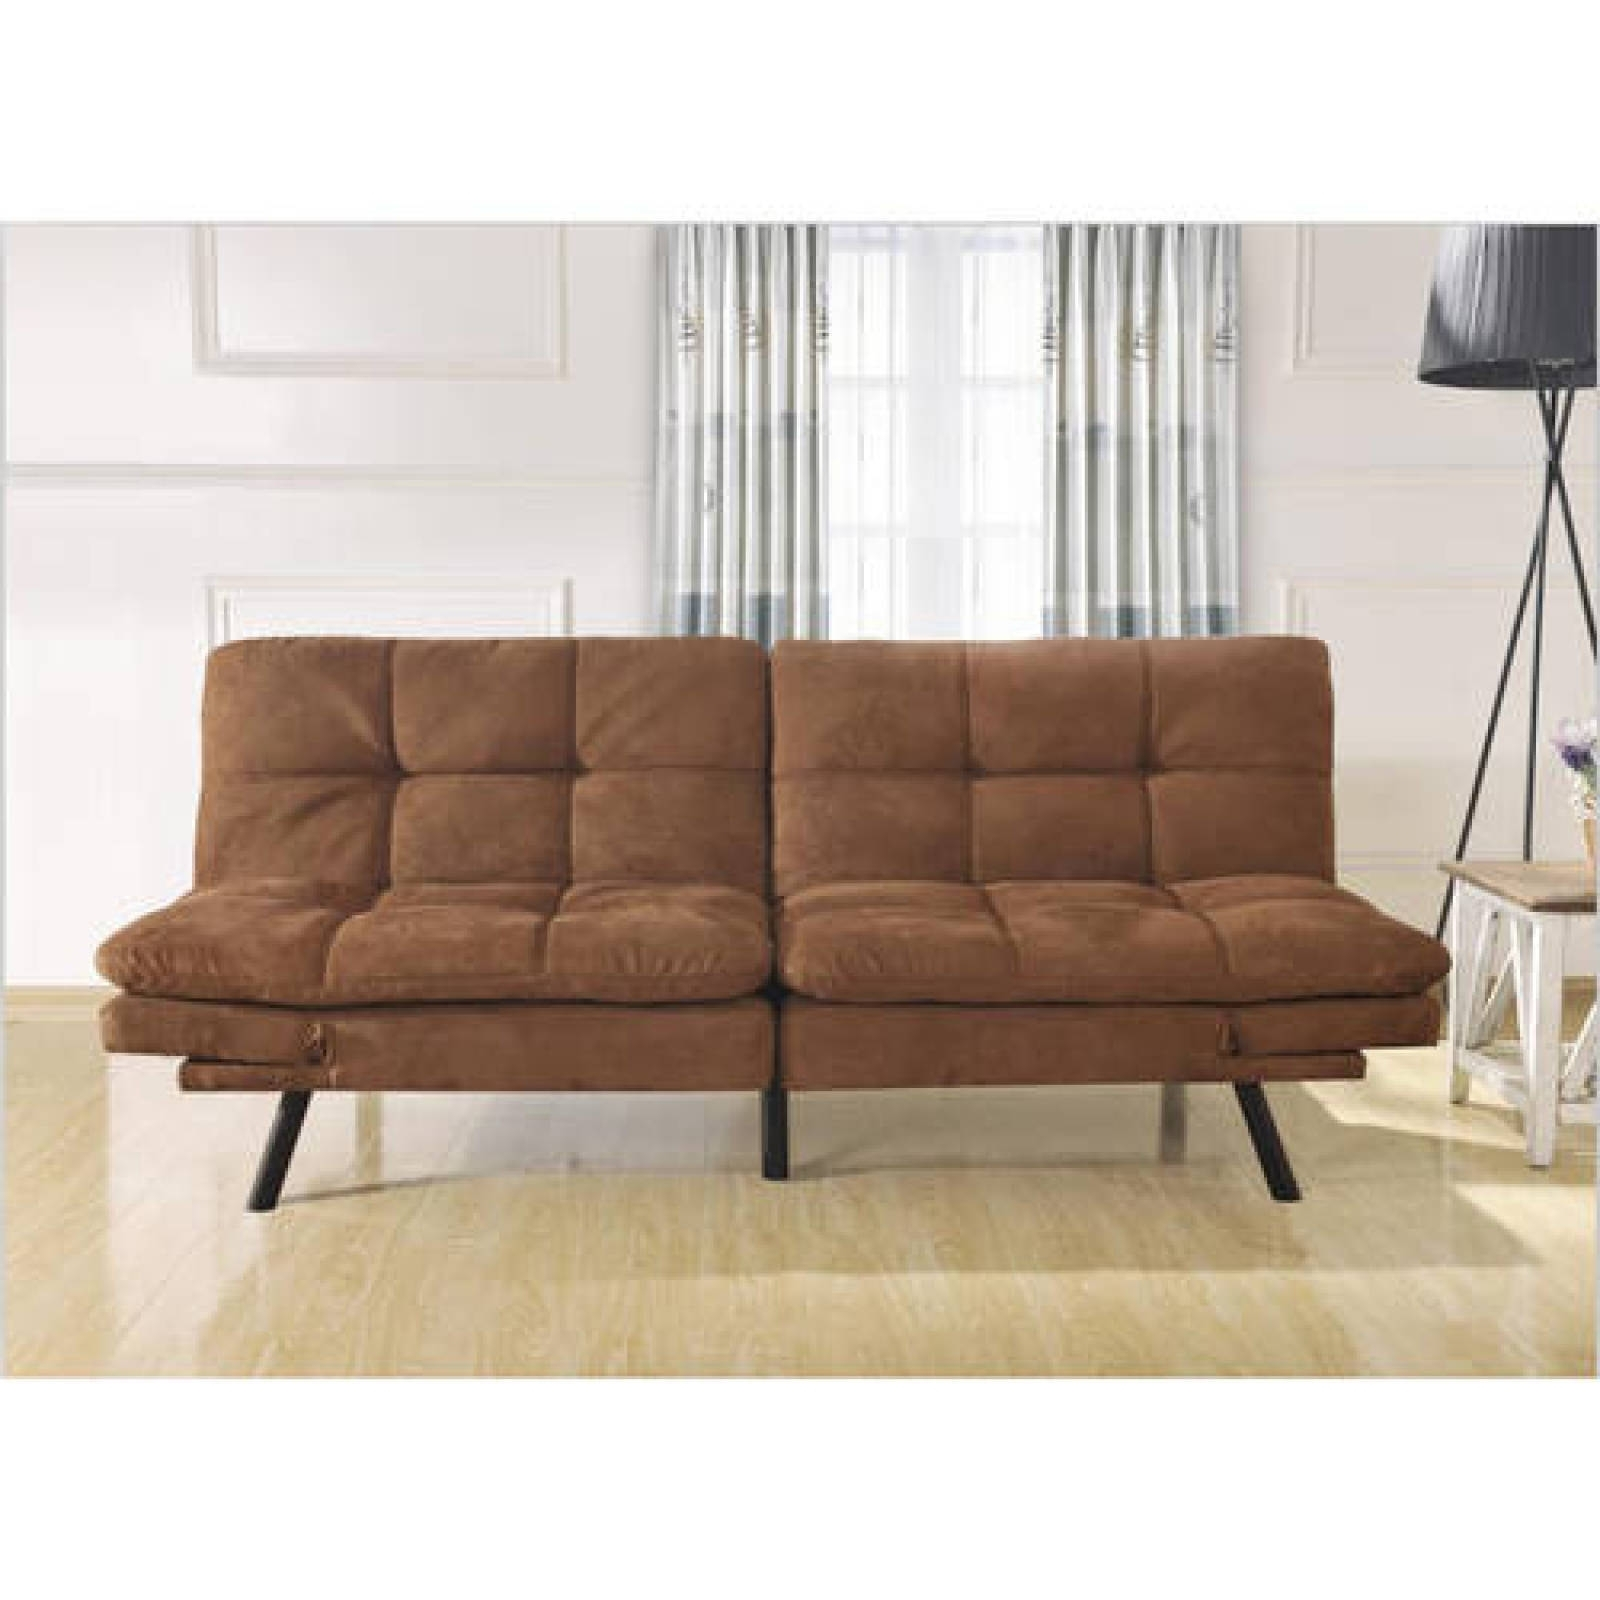 Preferred Convertible Sofa Bed Couch Futon Chaises Chair Seat Memory Foam Throughout Futon Chaises (View 9 of 15)